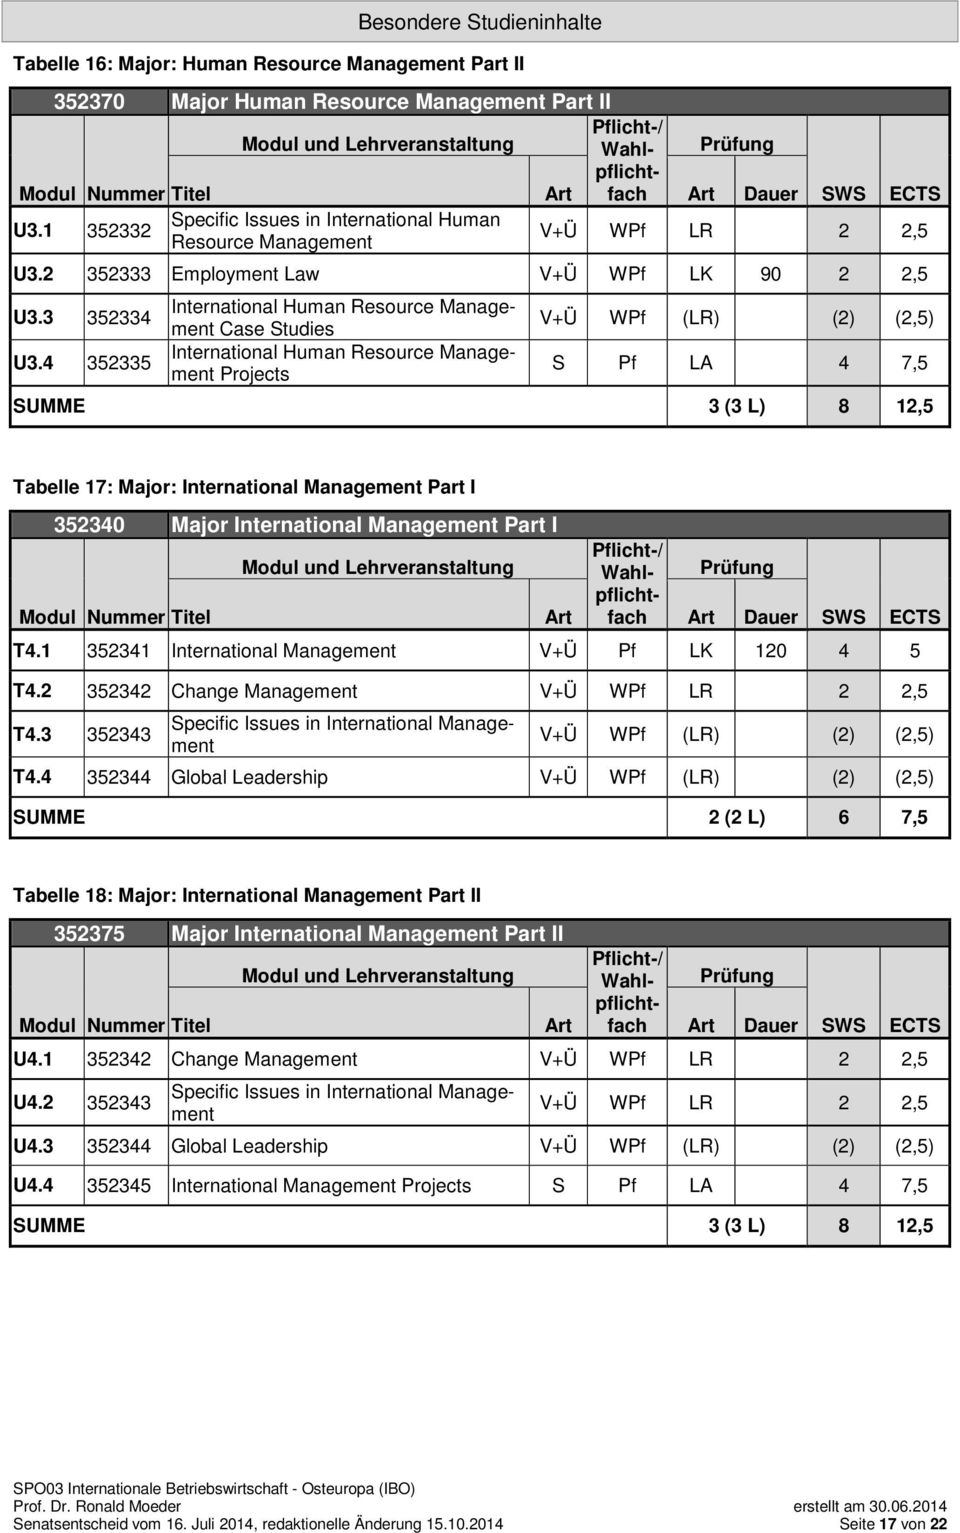 4 352335 International Human Resource Management Case Studies International Human Resource Management Projects V+Ü WPf (LR) (2) (2,5) S Pf LA 4 7,5 SUMME 3 (3 L) 8 12,5 Tabelle 17: Major: